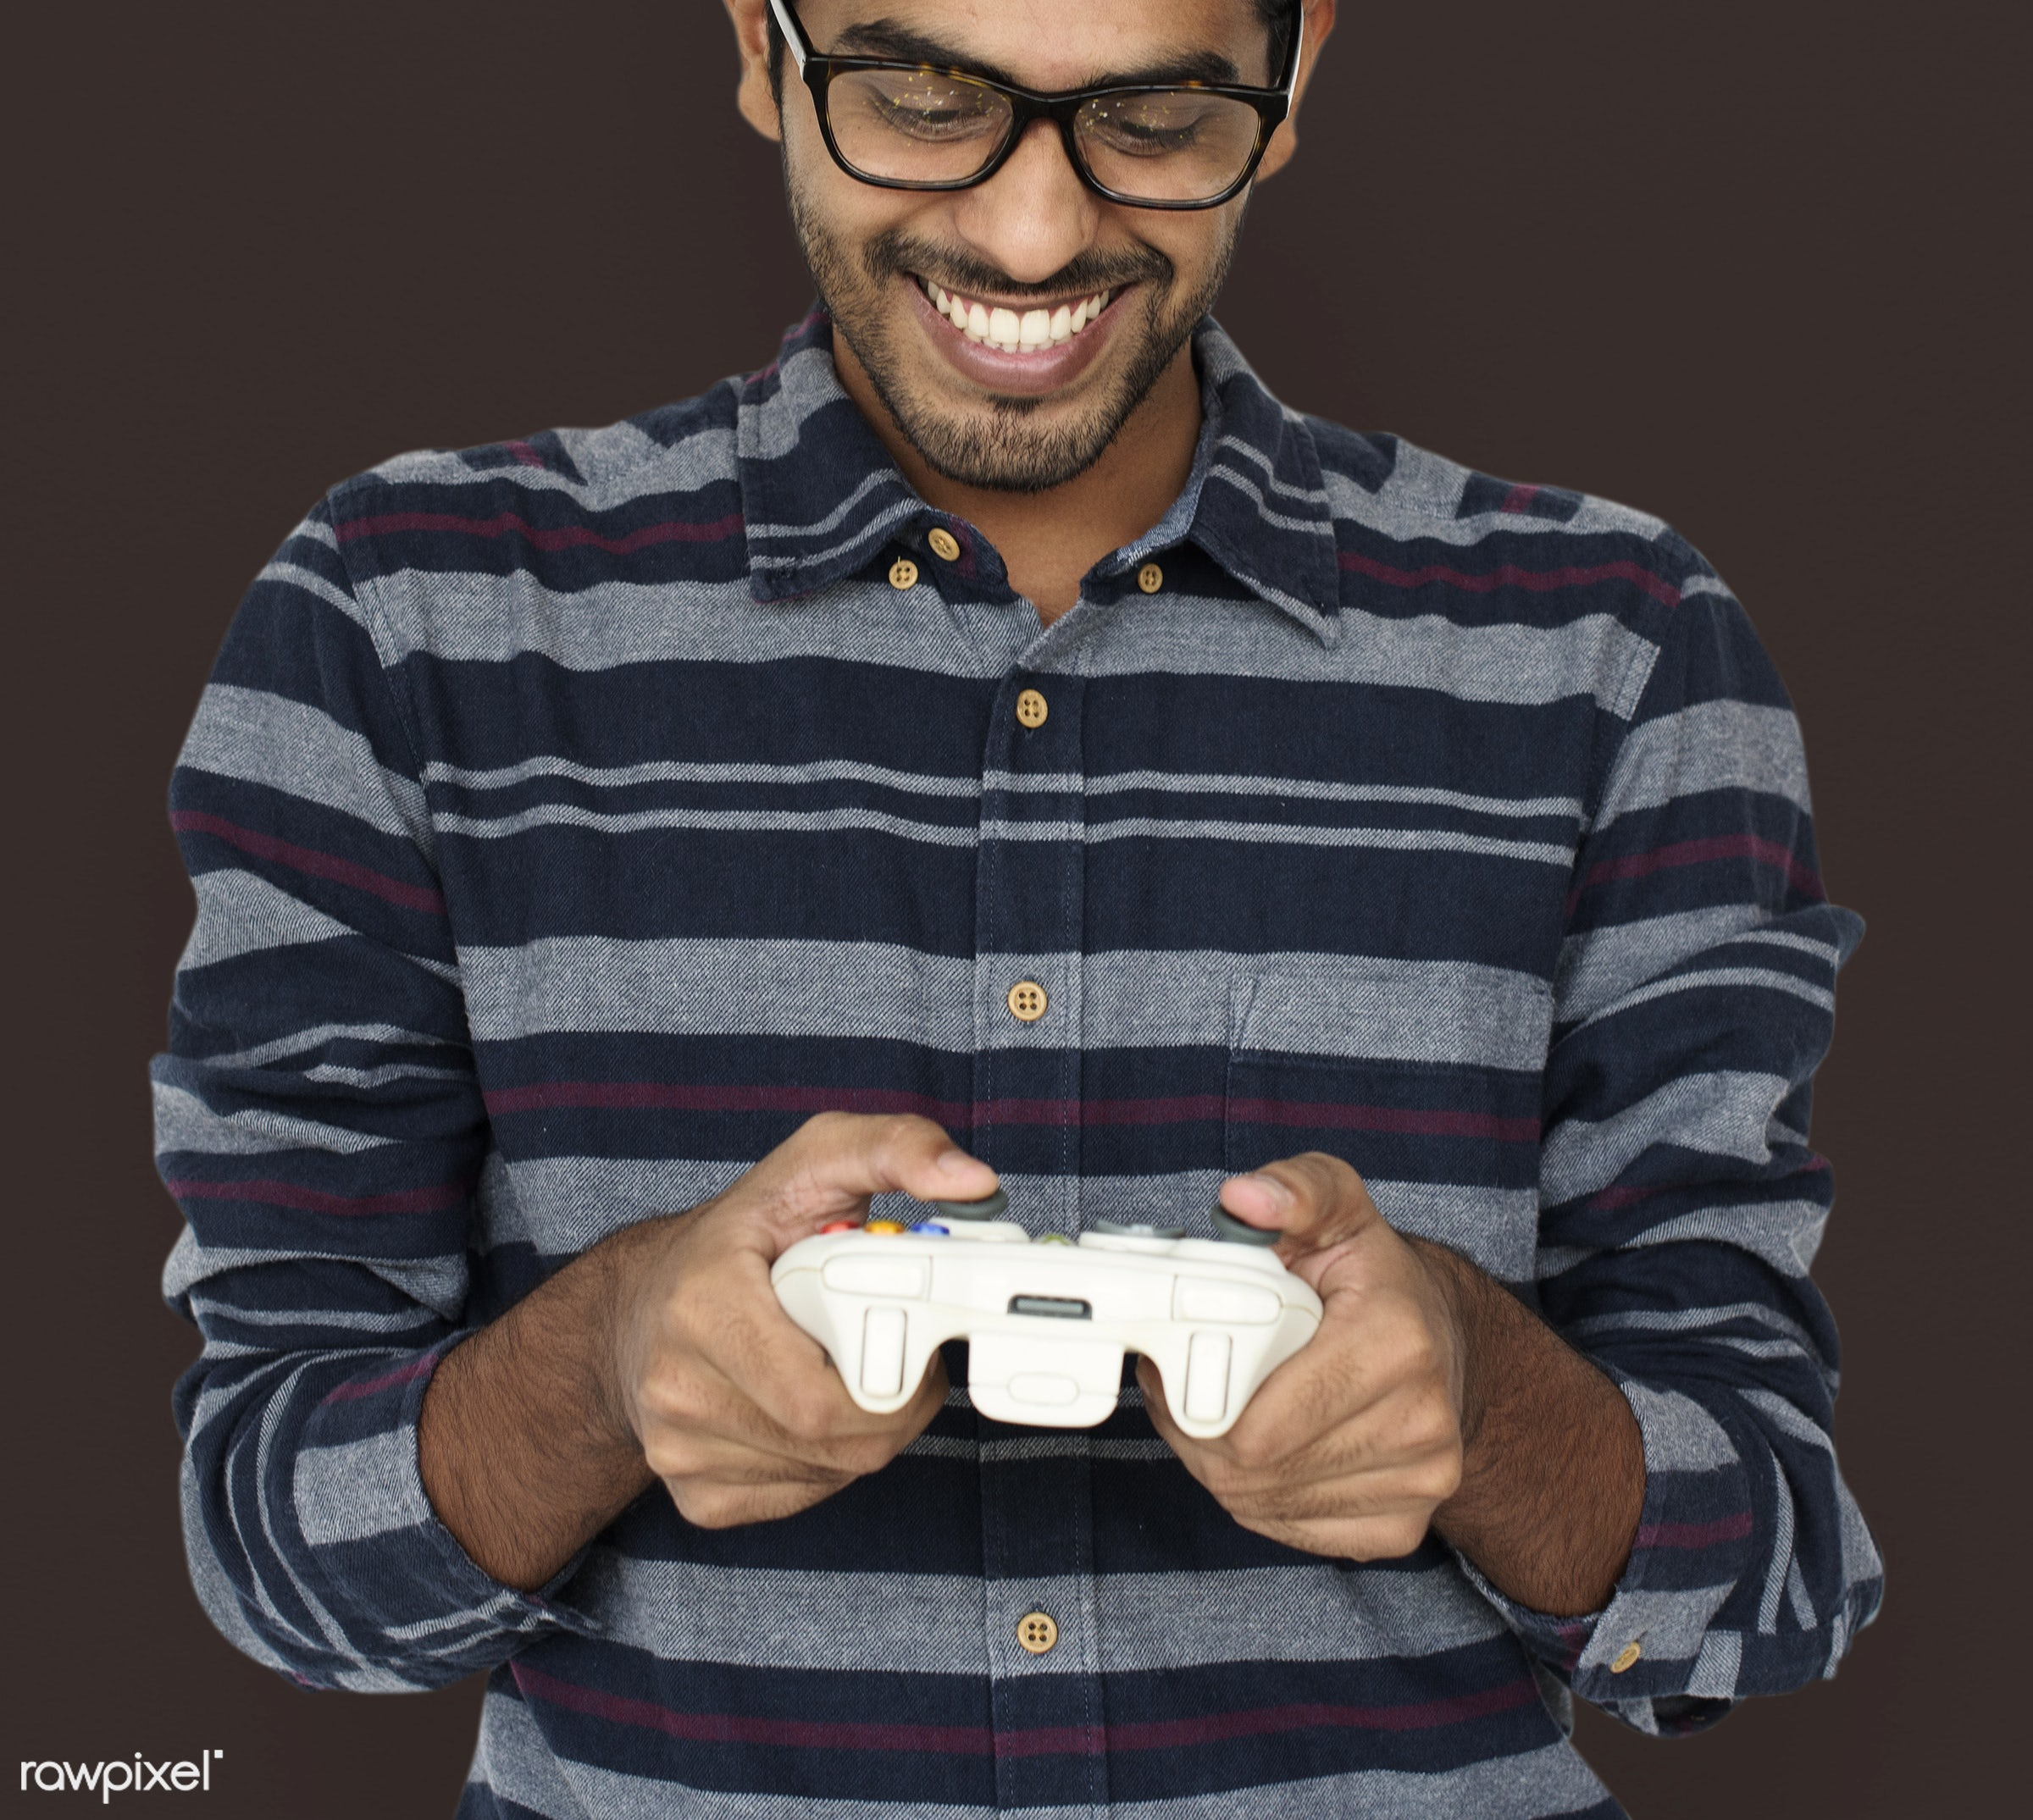 expression, person, technology, gaming, recreation, race, people, man, activity, black, isolated, joystick, connection, game...